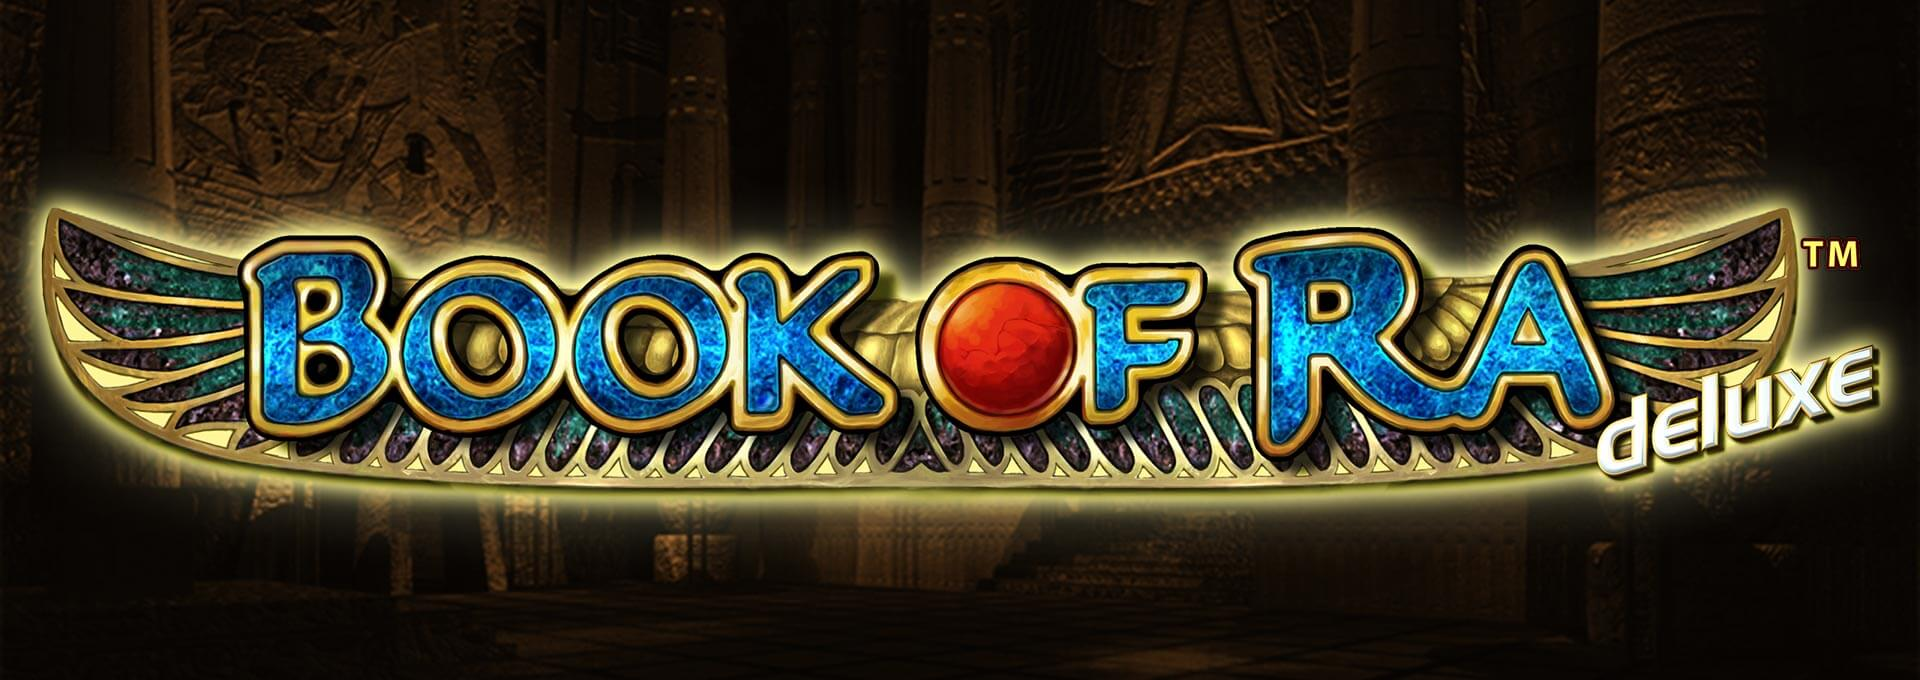 www online casino book of ra deluxe slot